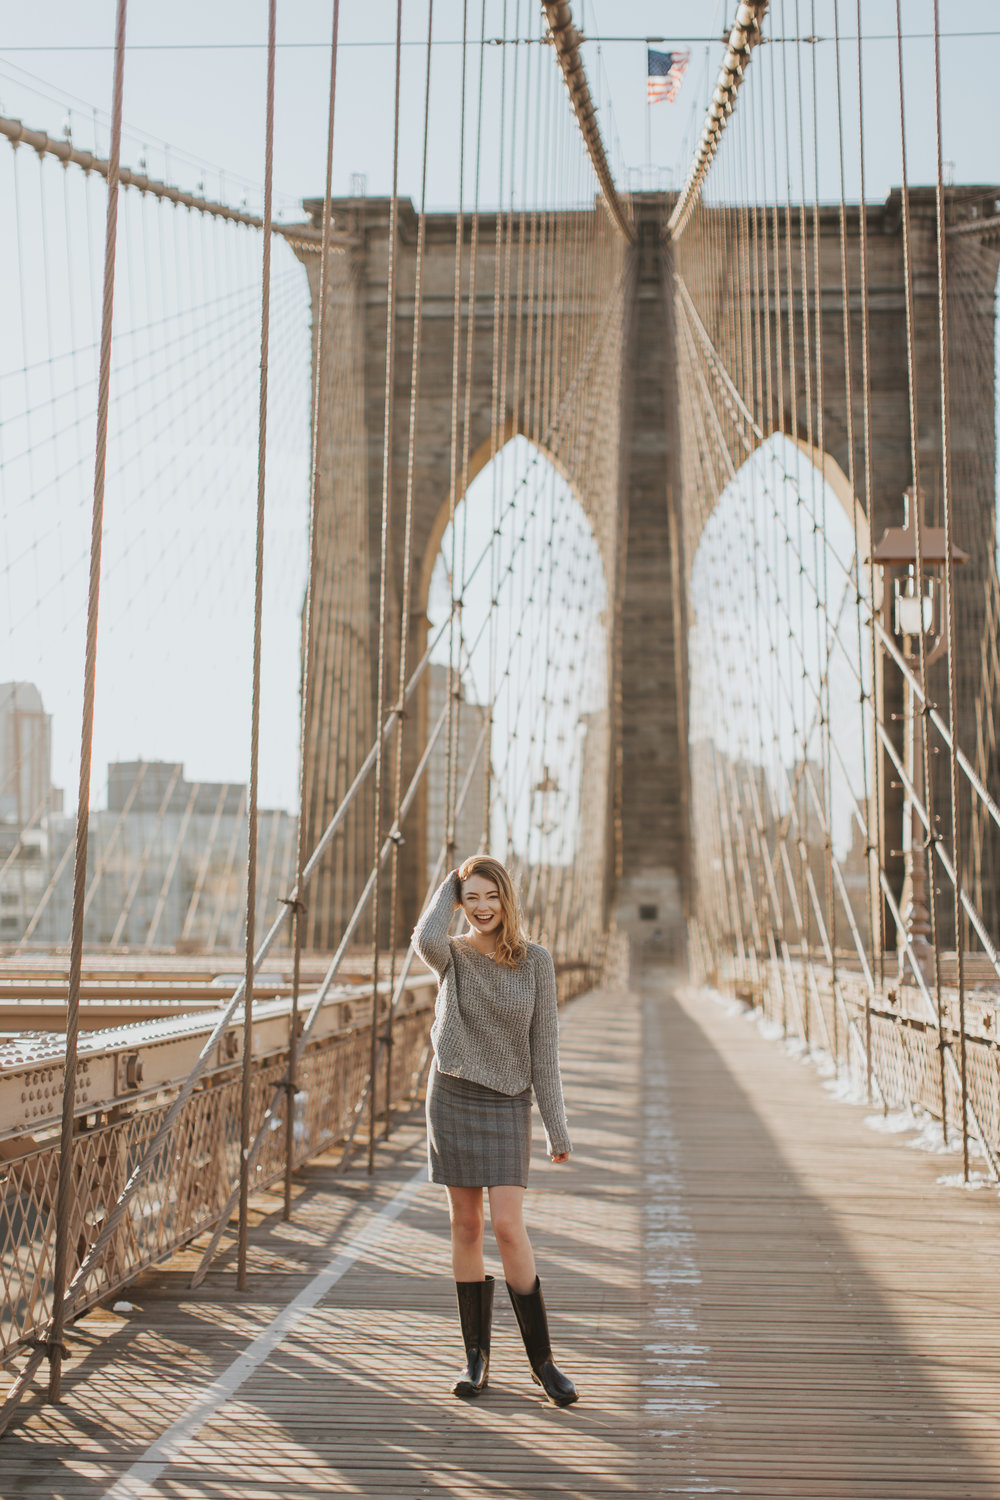 New York City portrait photographer, New york city wedding photographer, Brooklyn bridge portrait, brooklyn bridge photos, brooklyn bridge sunrise session, Brooklyn bridge inspiration521.JPG